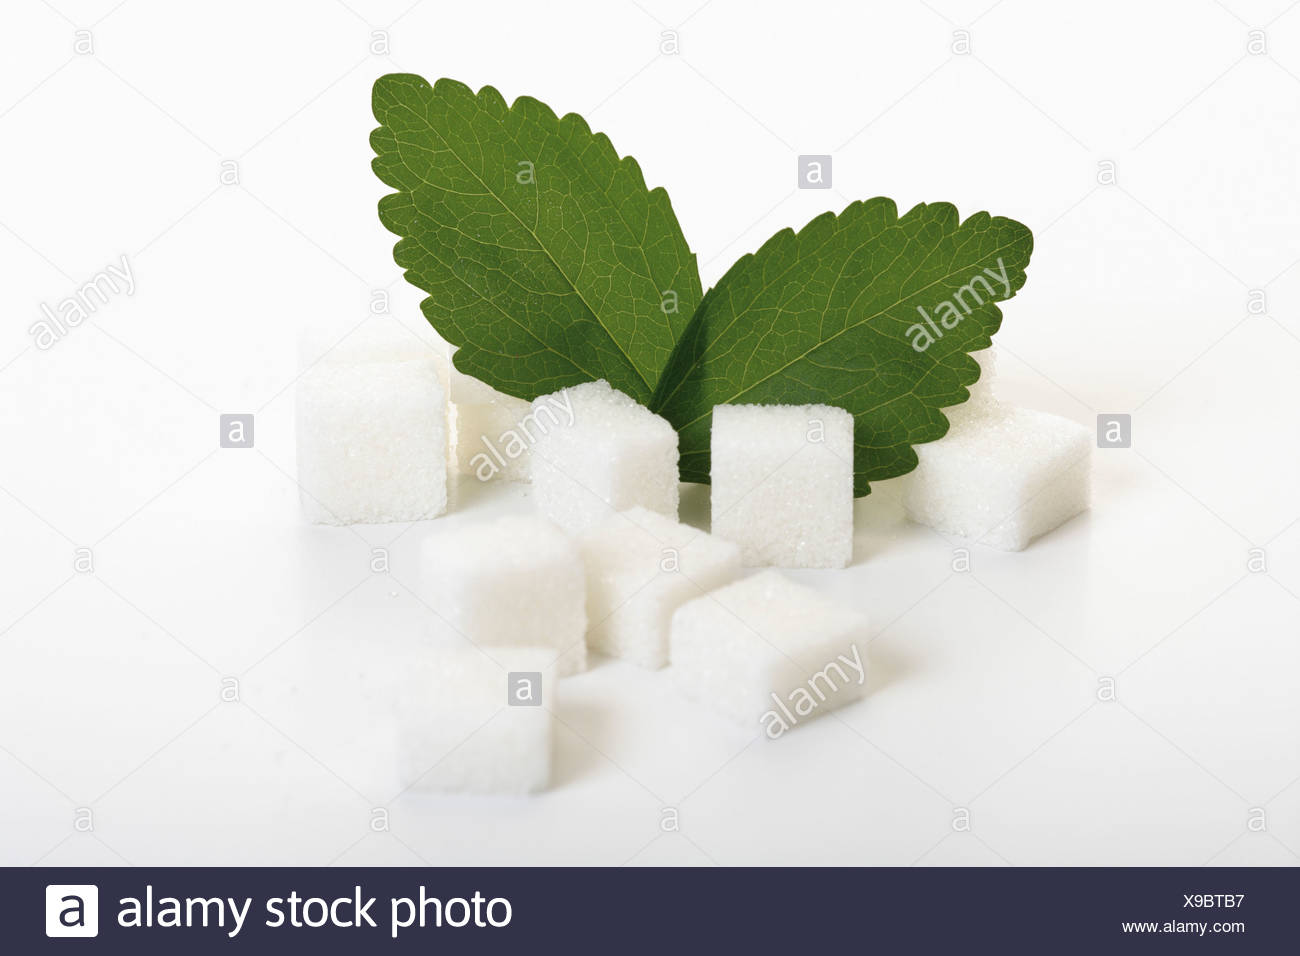 Sugar lumps and stevia leaves on white background - Stock Image